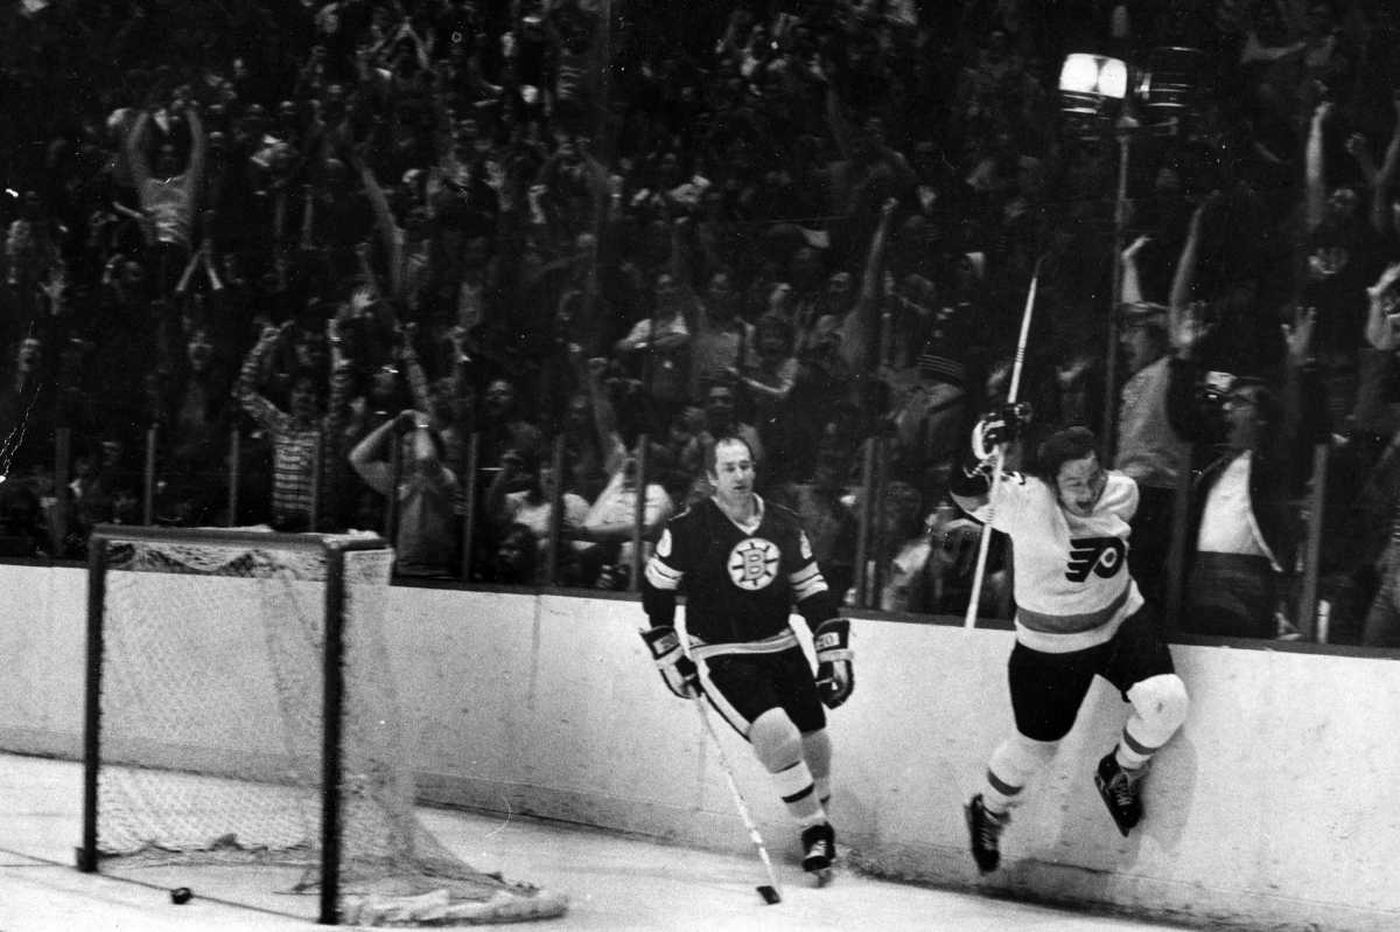 Flyers playoff flashback: Reggie Leach's NHL-record 5 goals in 1976 win over Boston Bruins almost didn't happen